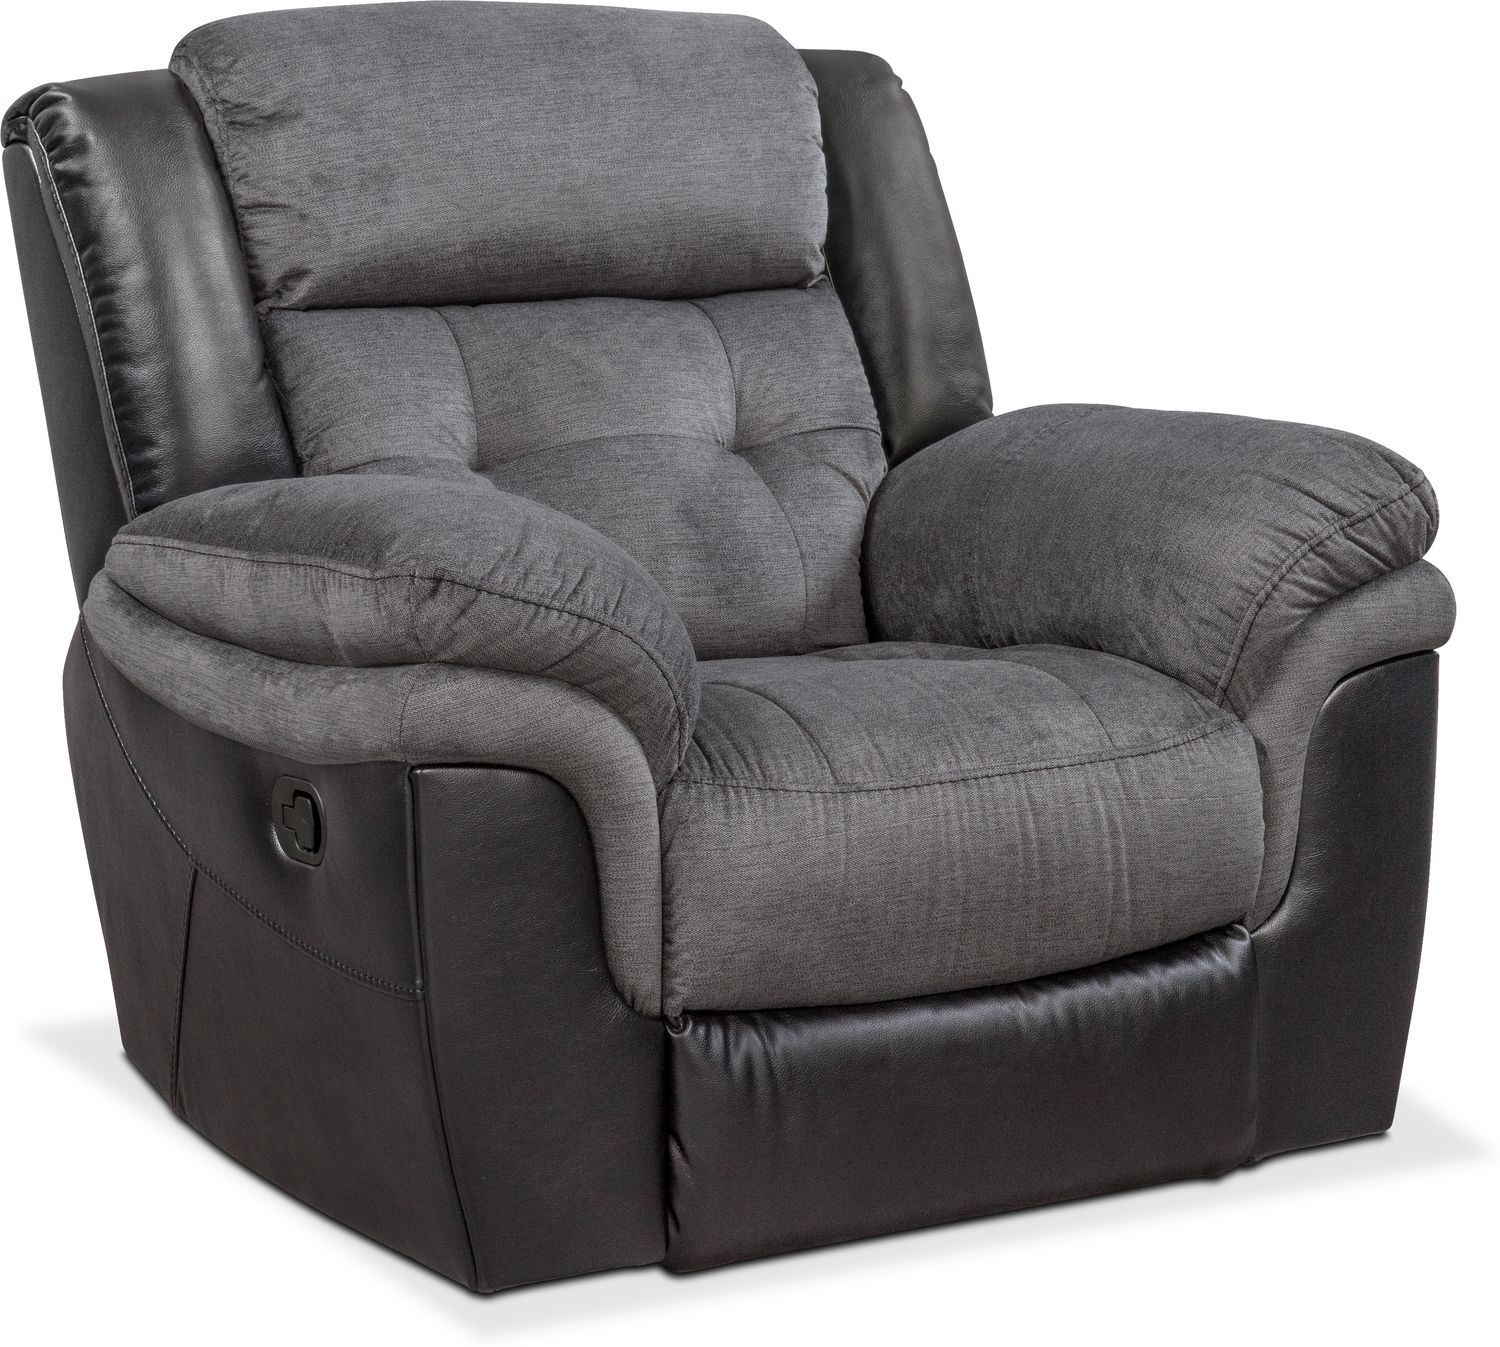 Living Room Furniture - Tacoma Glider Recliner